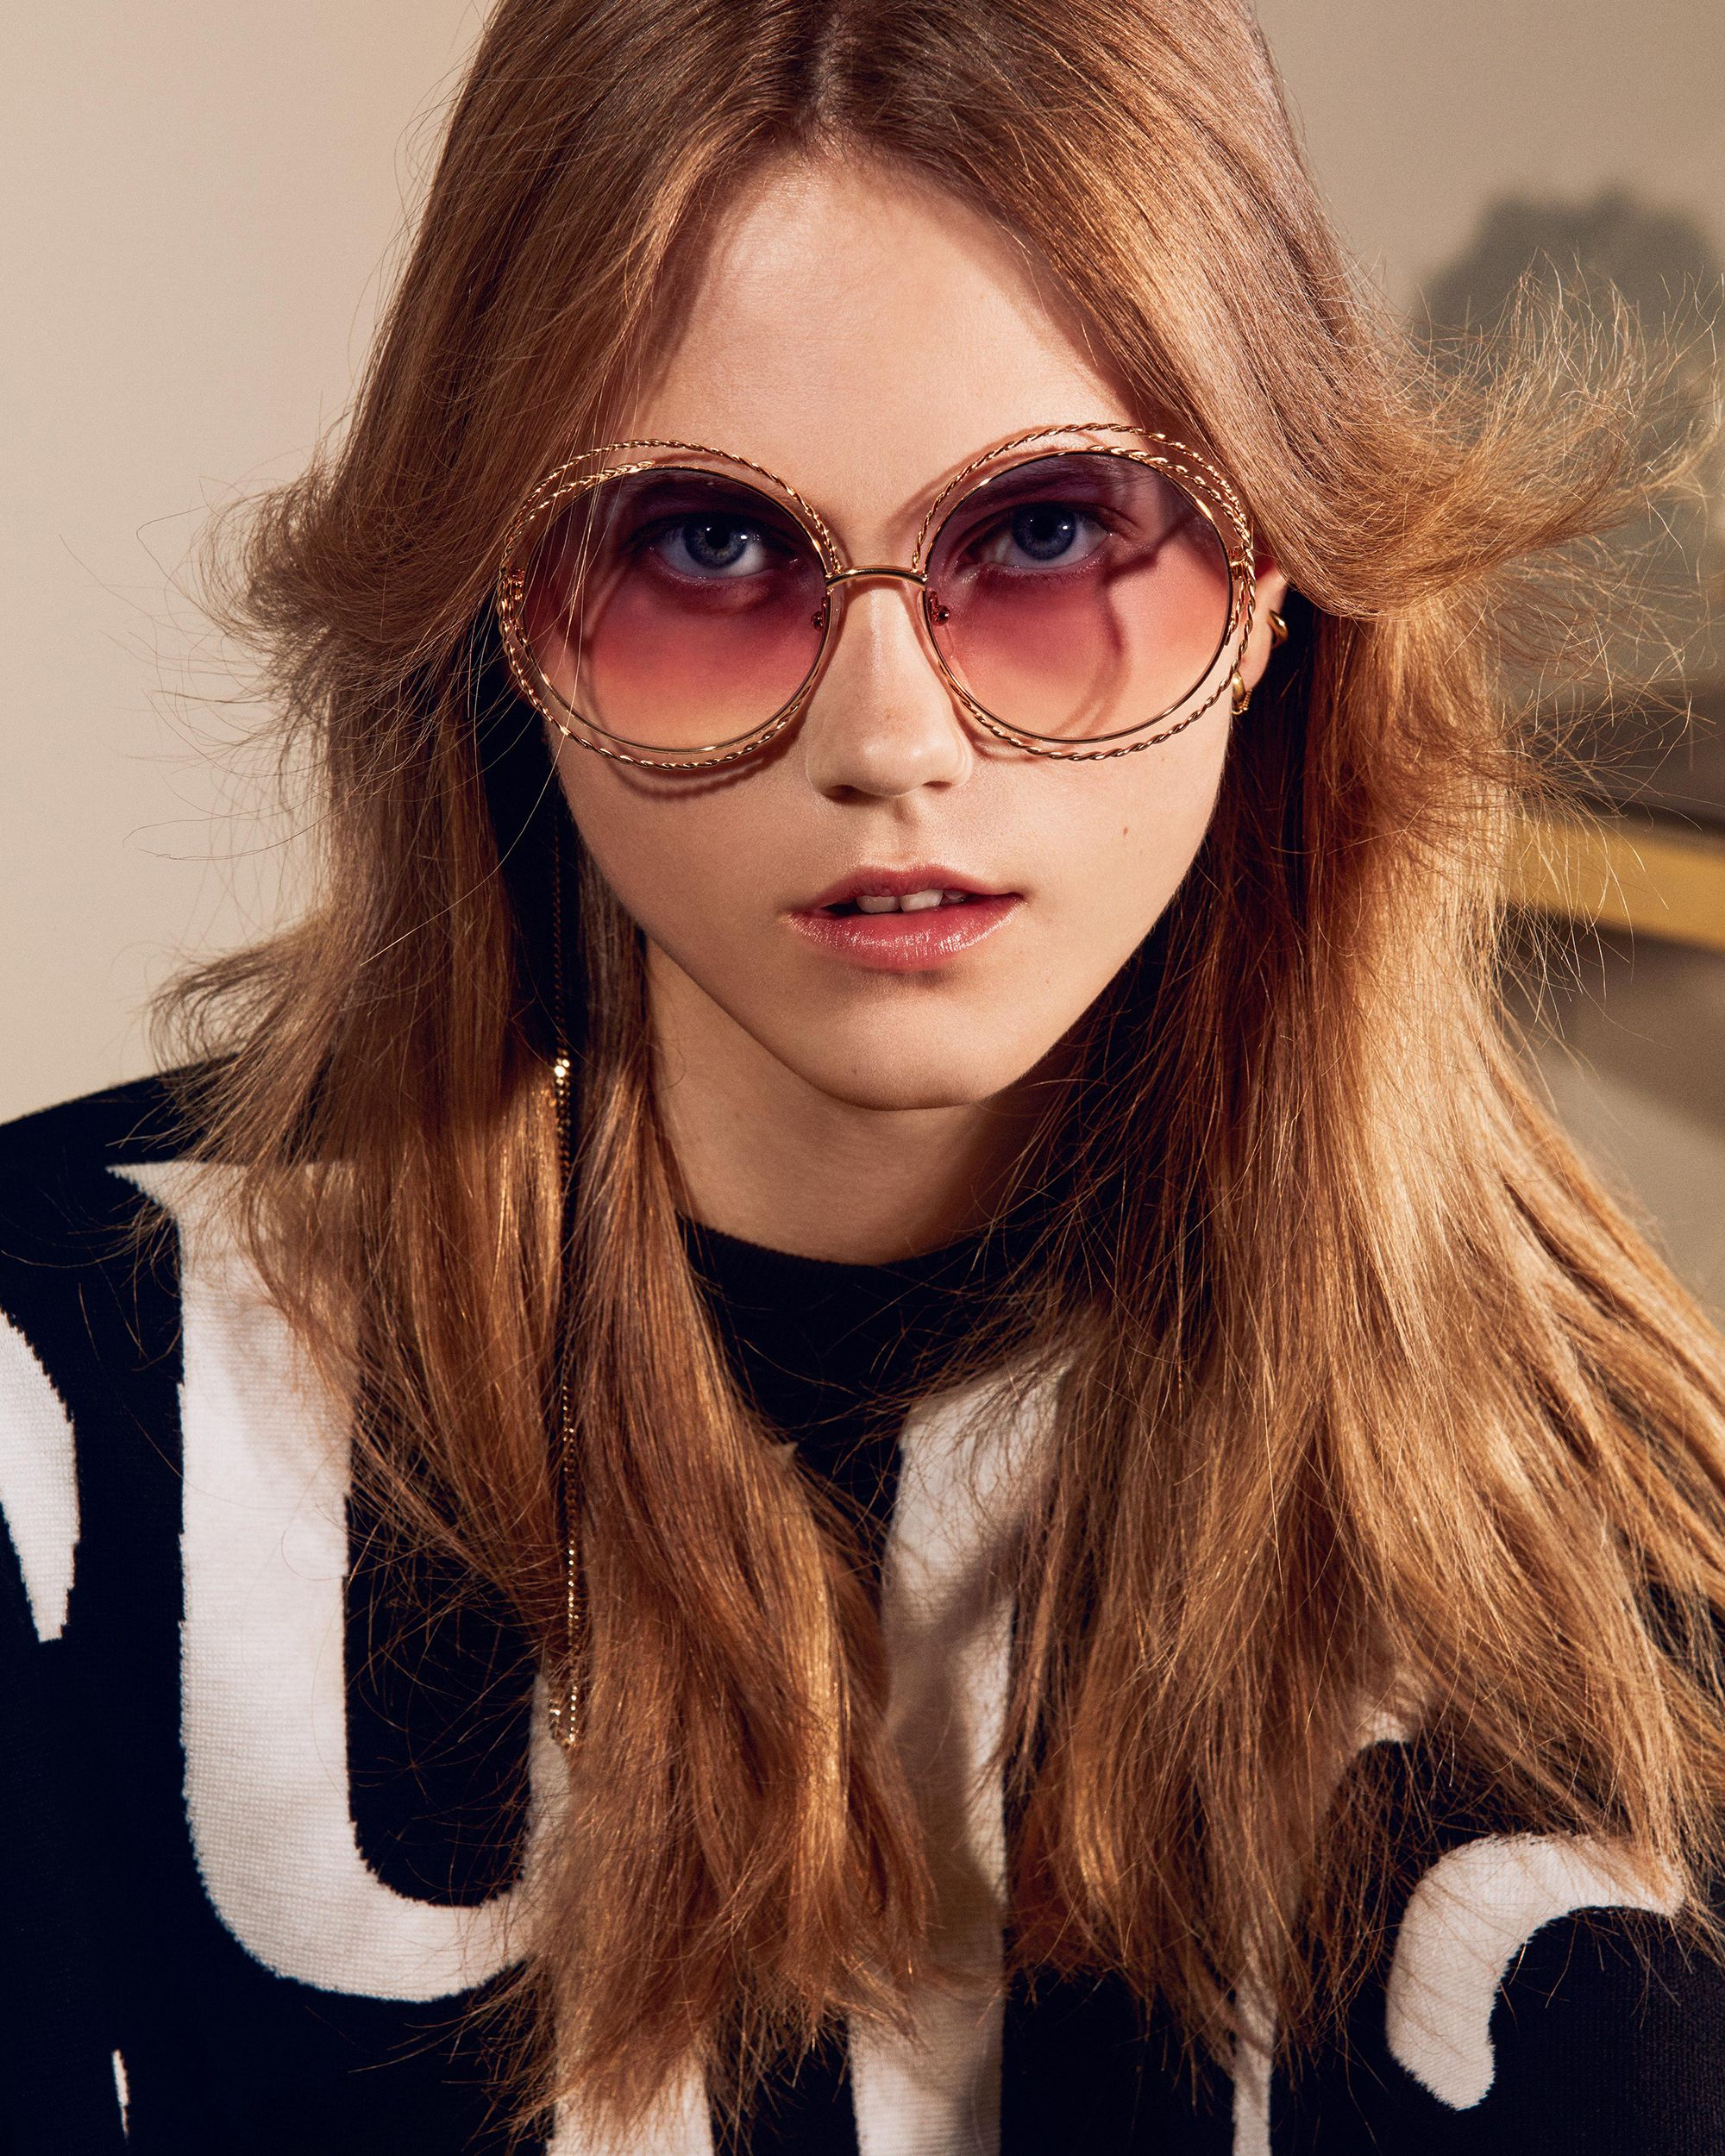 a26f2c10dcaf Carlina fever. Find the perfect pair of sunglasses on chloe.com #chloeGIRLS